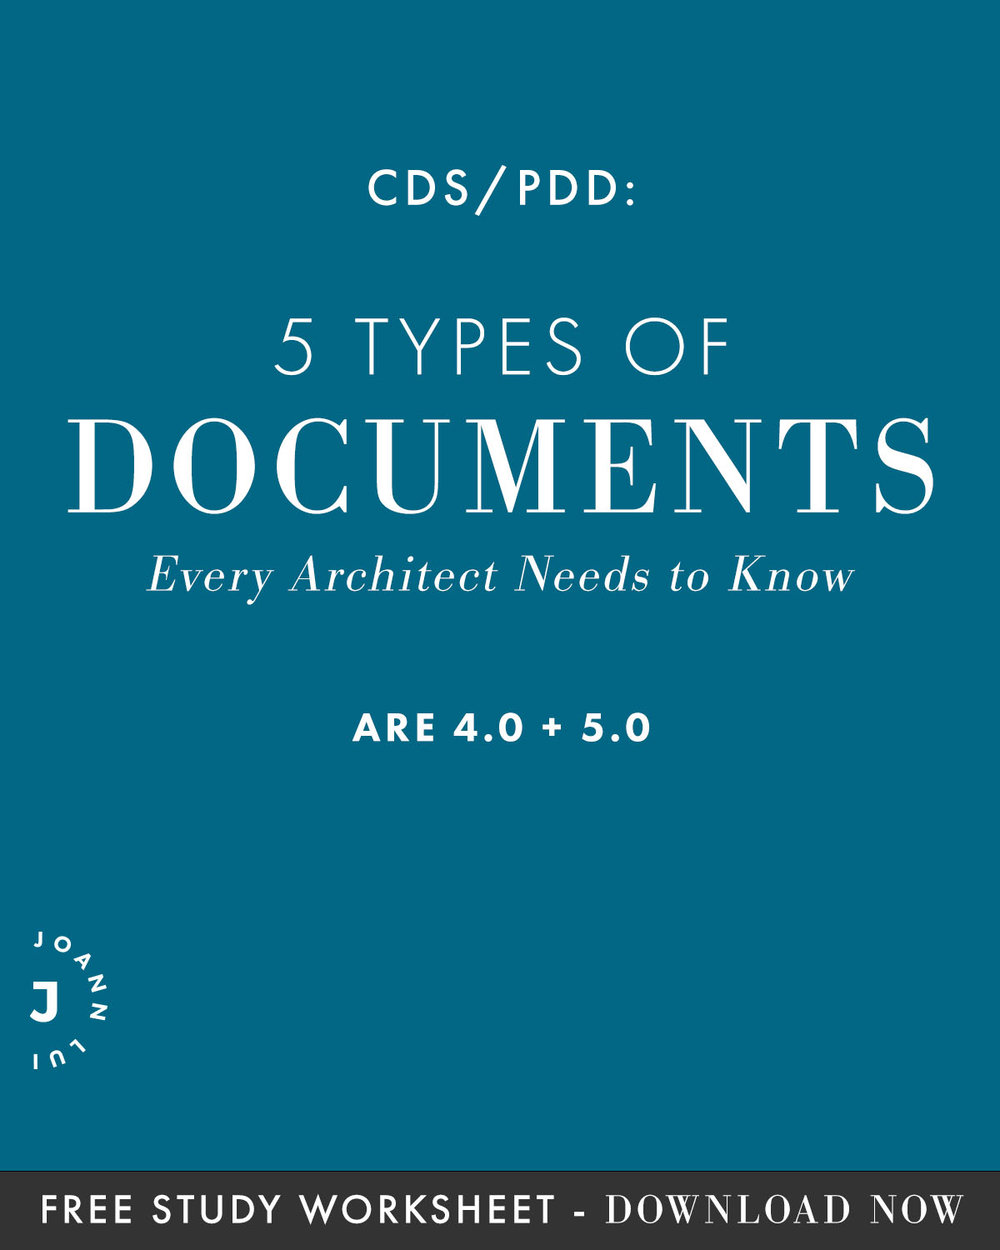 We're going to look into every type of documents you'd need to know for the are 4.0 CDS/are 5.0 PDD exam. You can even download the study guide at the end of the post before your exam! | Joann lui